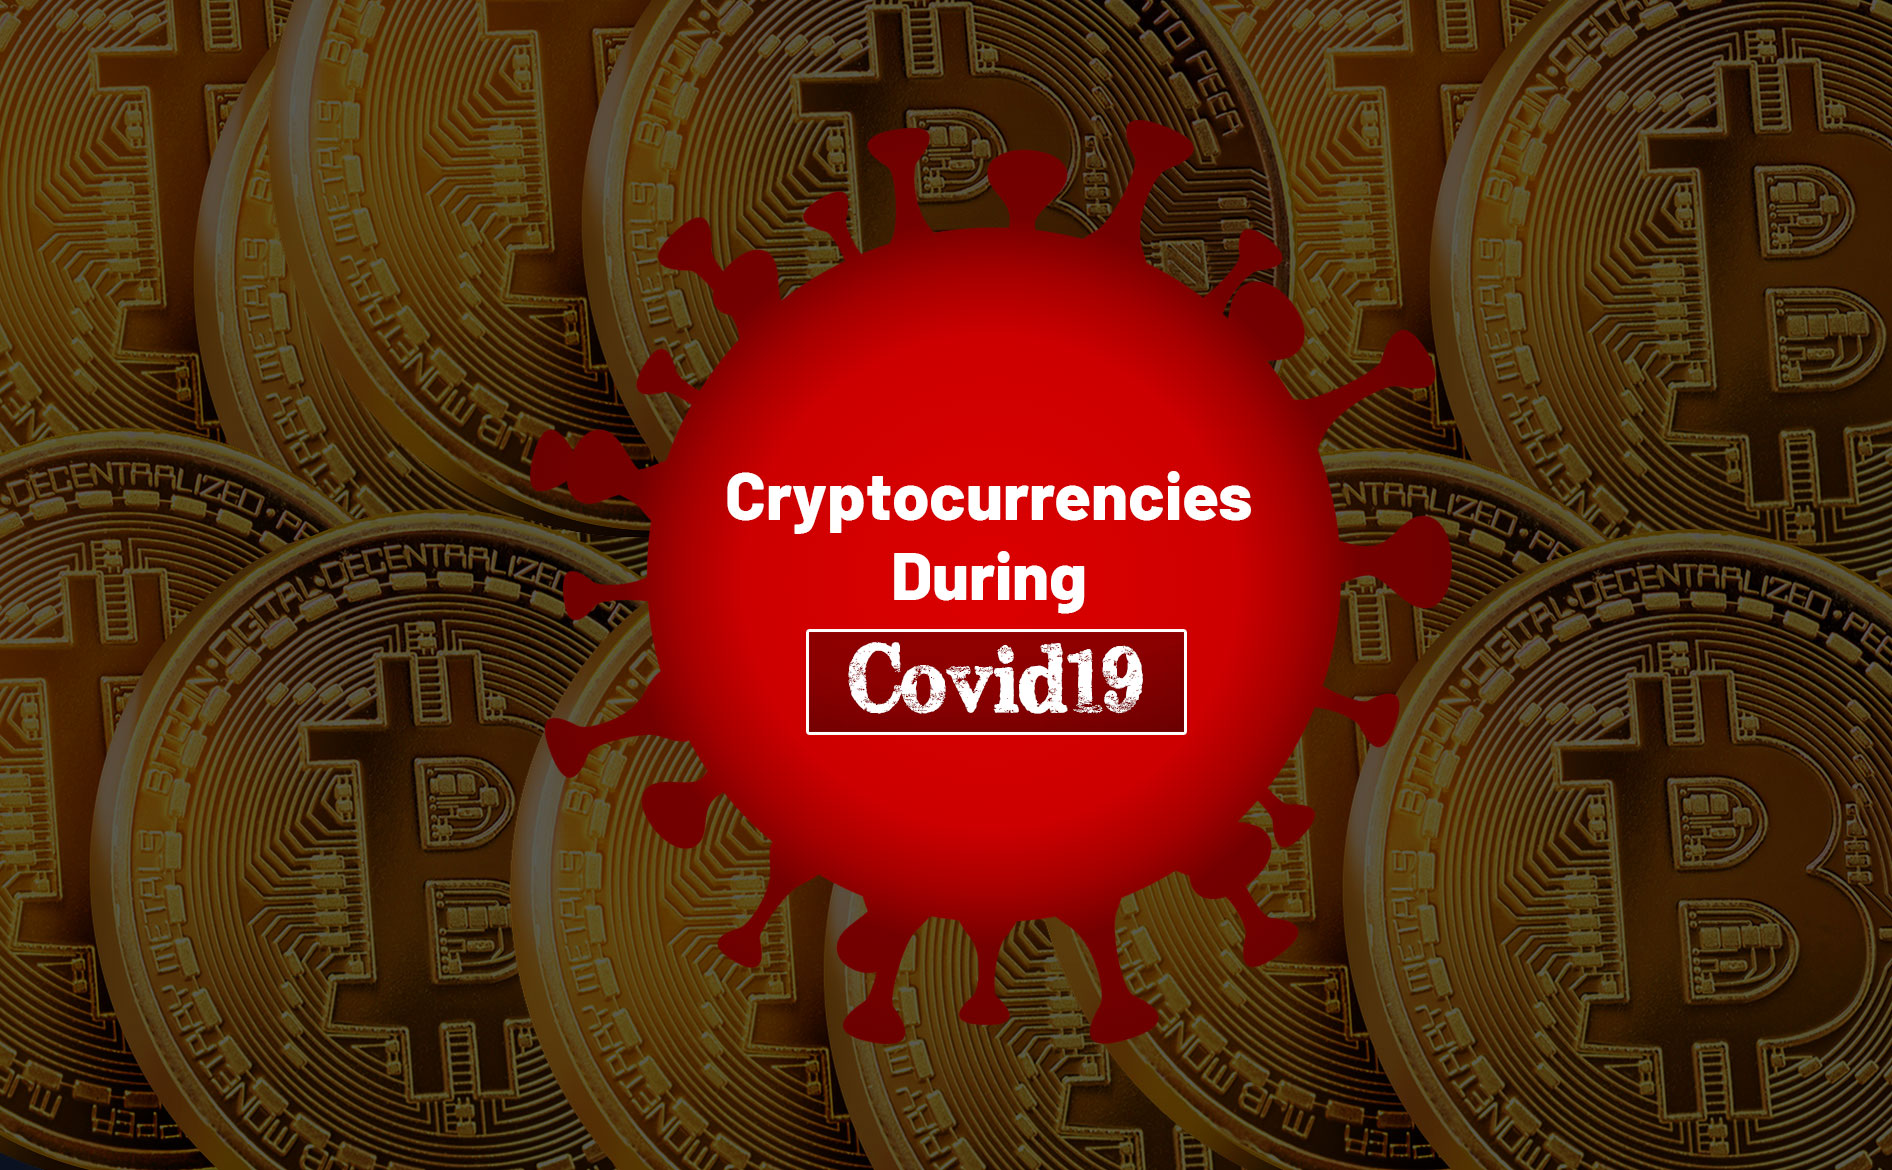 State Of Cryptocurrencies During Covid19